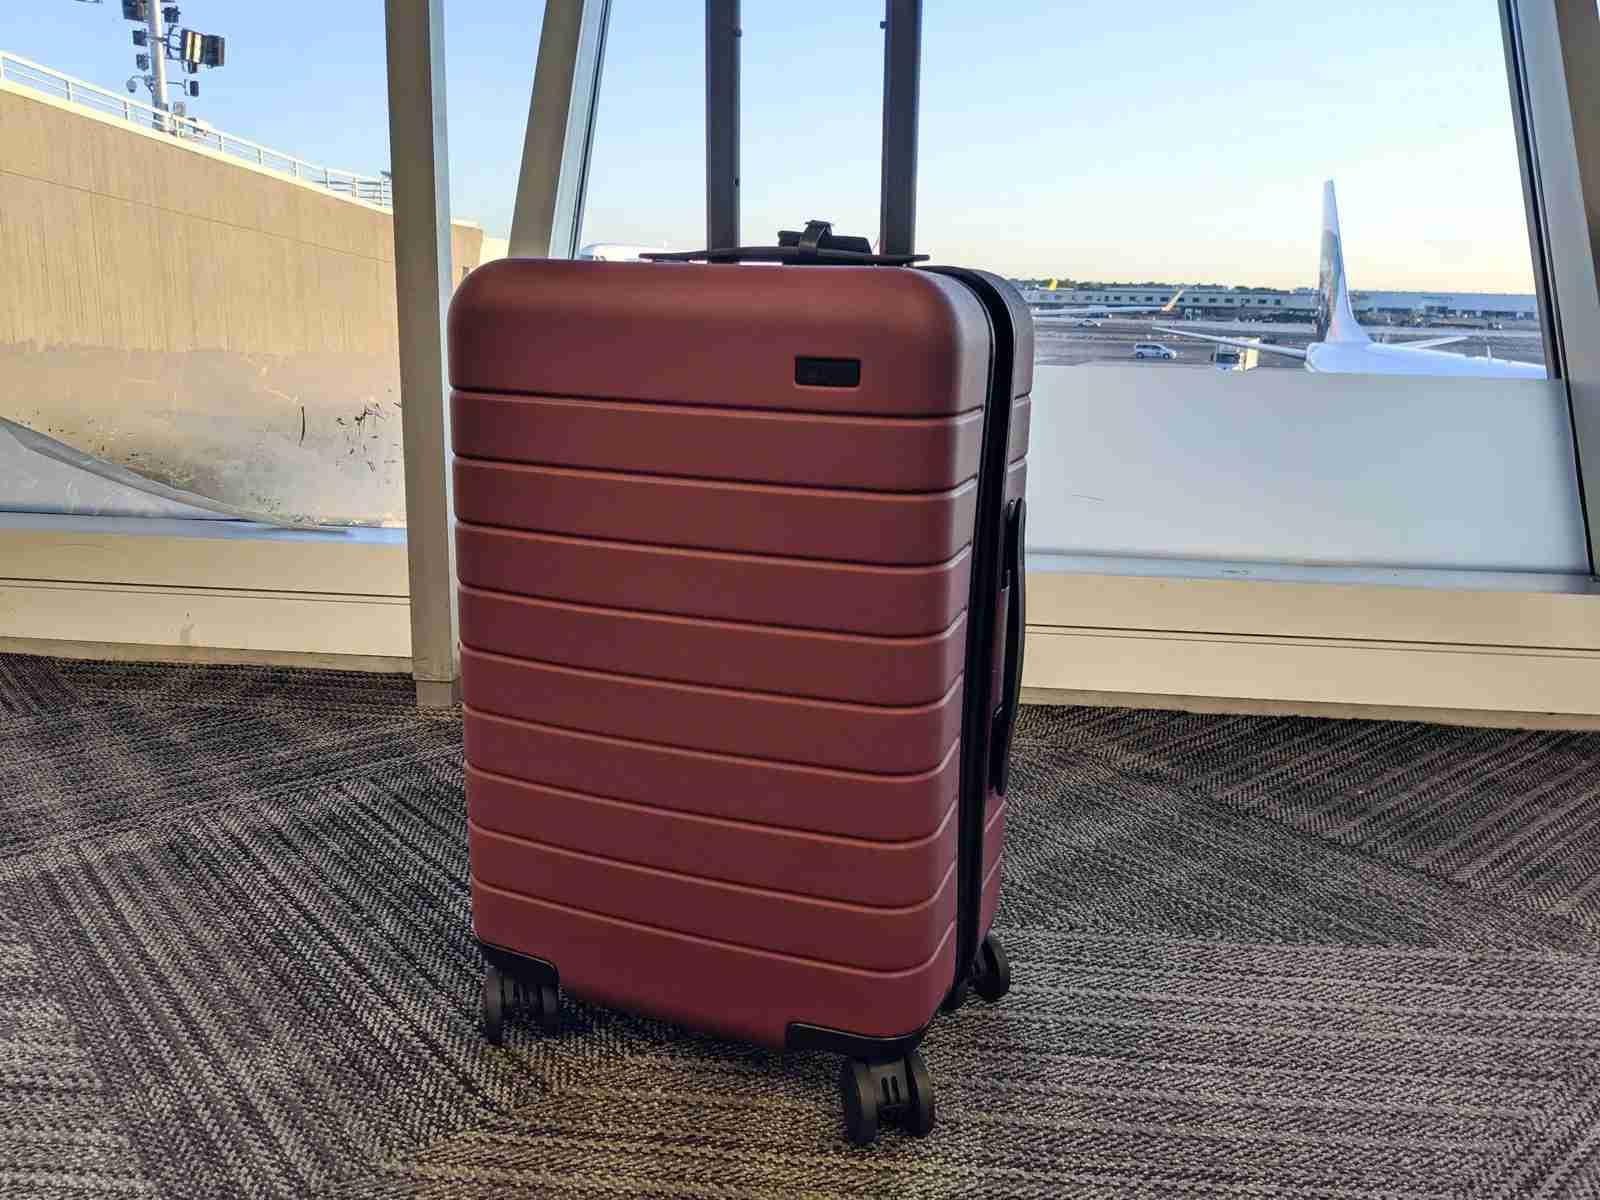 Away Carry-On bag. (Photo by Isabelle Raphael/The Points Guy)